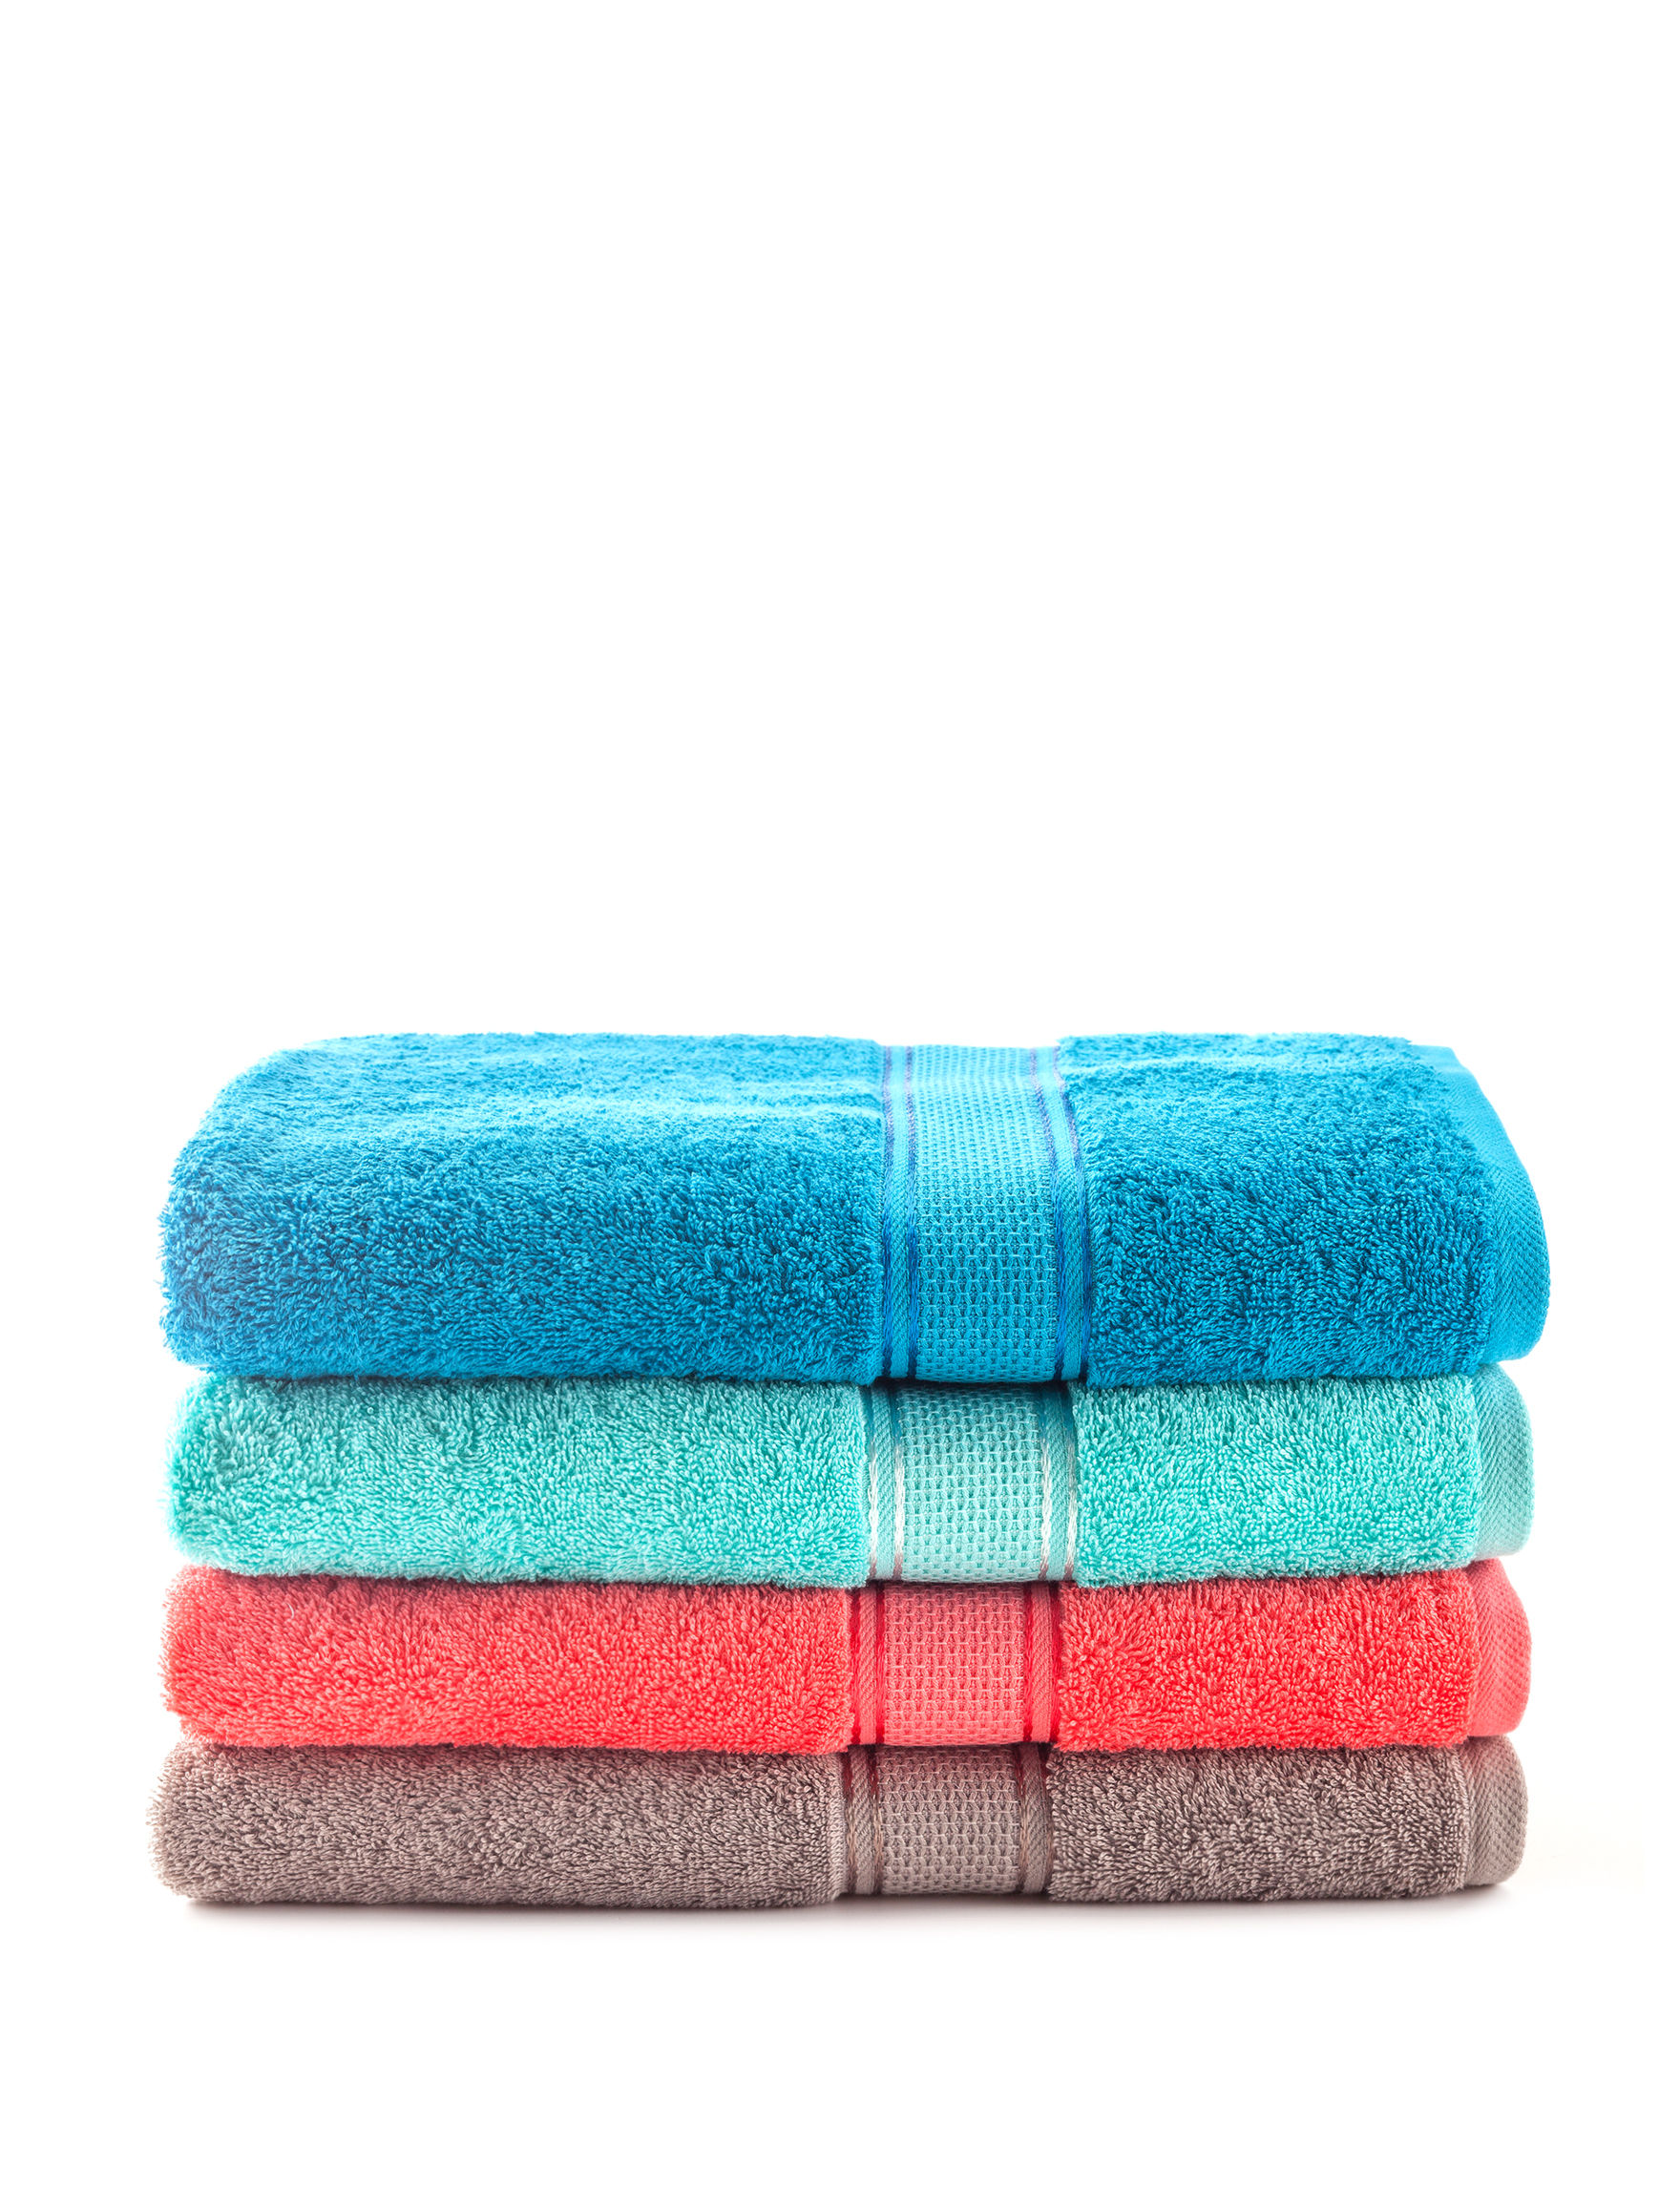 Great Hotels Collection Steel Bath Towels Towels